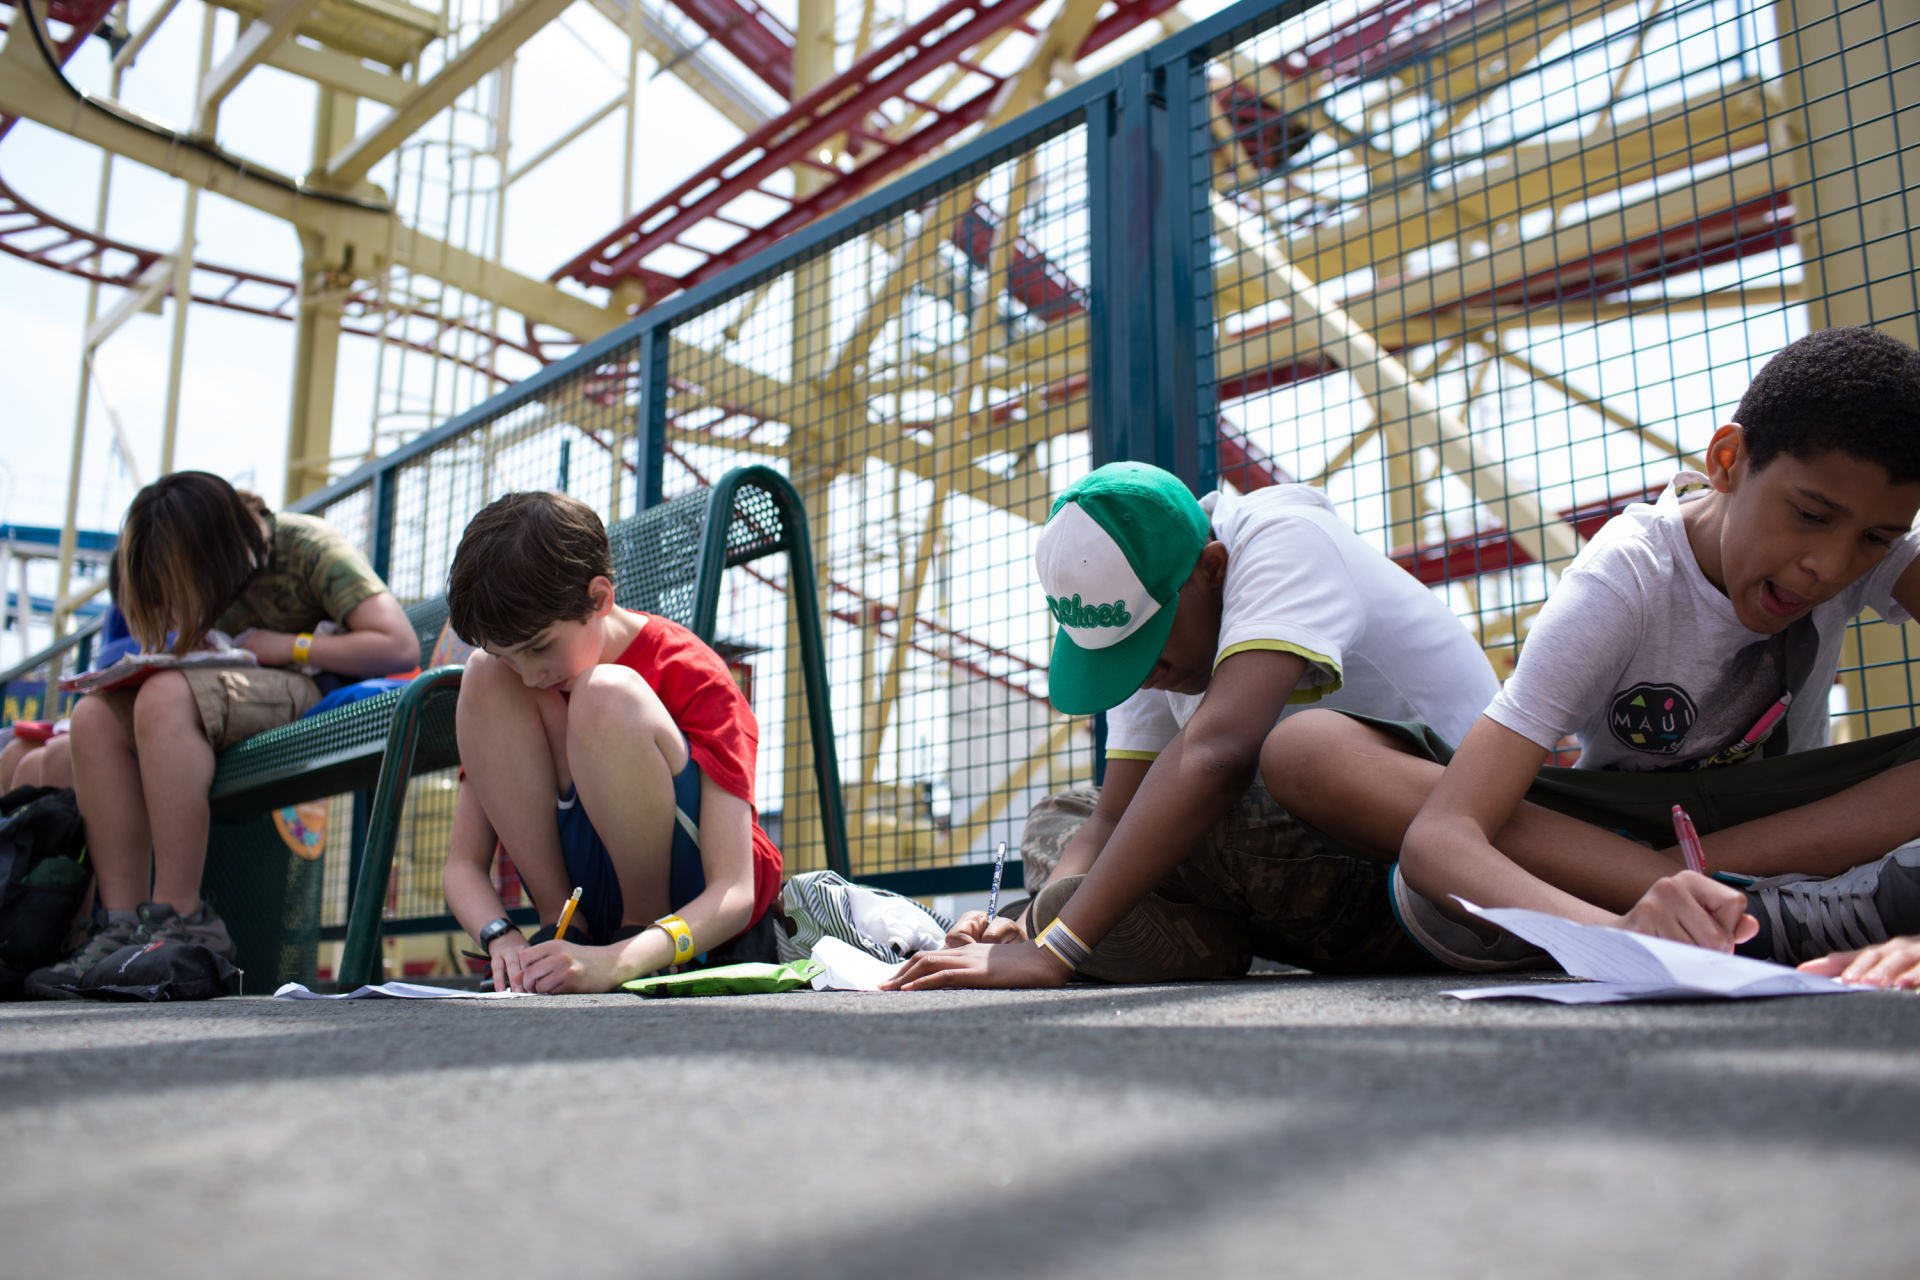 Thea Jones, 12, at left, Etai Kurtzman, 12, Seth Samuel, 12 and Terrell Gantt, 12, fill out game analysis worksheets at Coney Island in Brooklyn, NY May 28, 2015. The group of students from Quest to Learn School took the day trip to Coney Island to analyze user experience on games and rides at Luna Park as part of  their late-spring school curriculum.